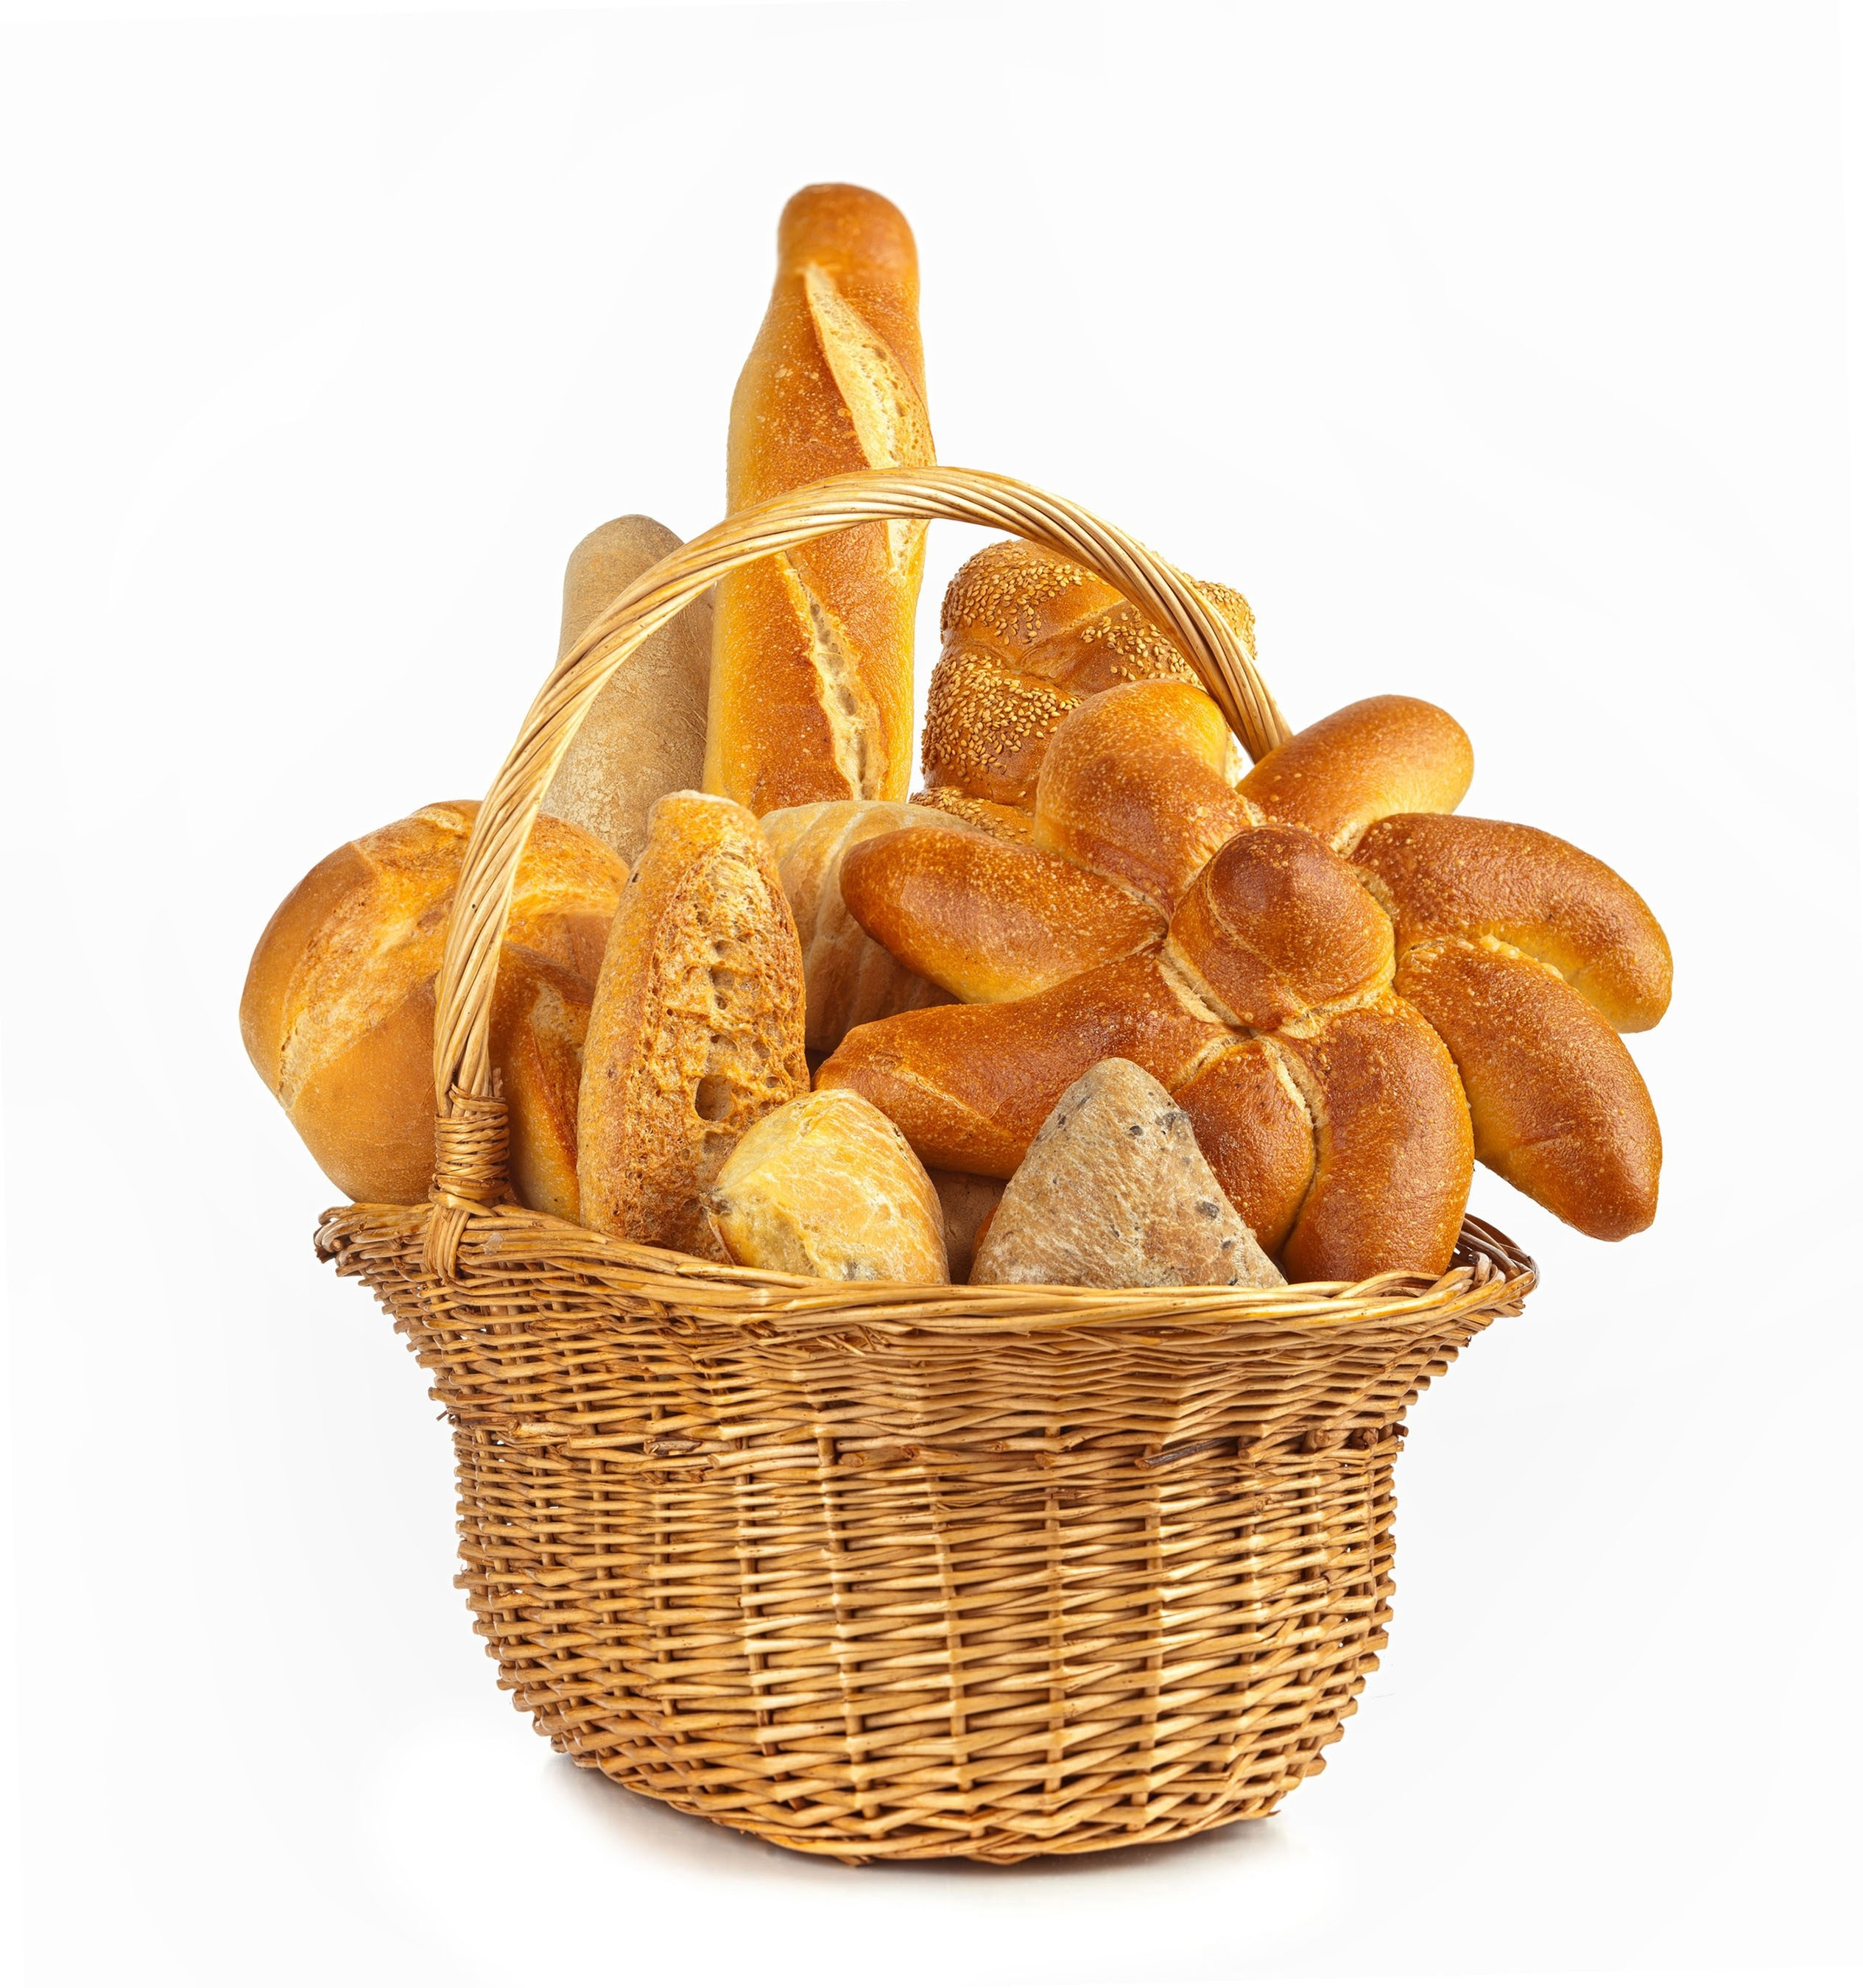 A lot of bread doesn't even taste salty, but one piece can have as much as 230 milligrams of sodium.